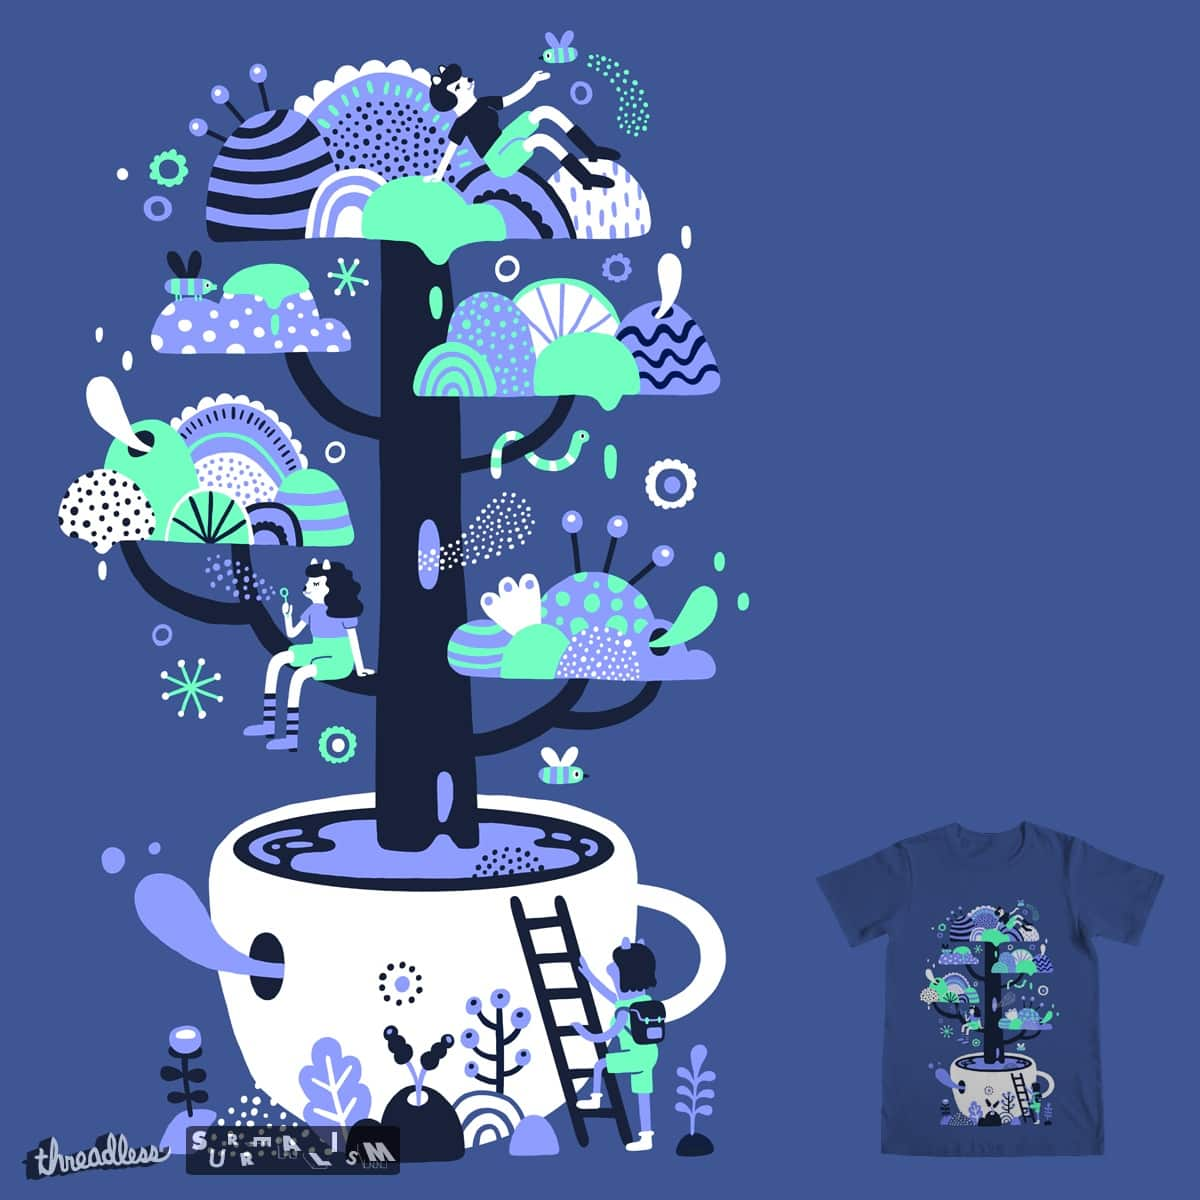 Up a tree cup by micpod on Threadless